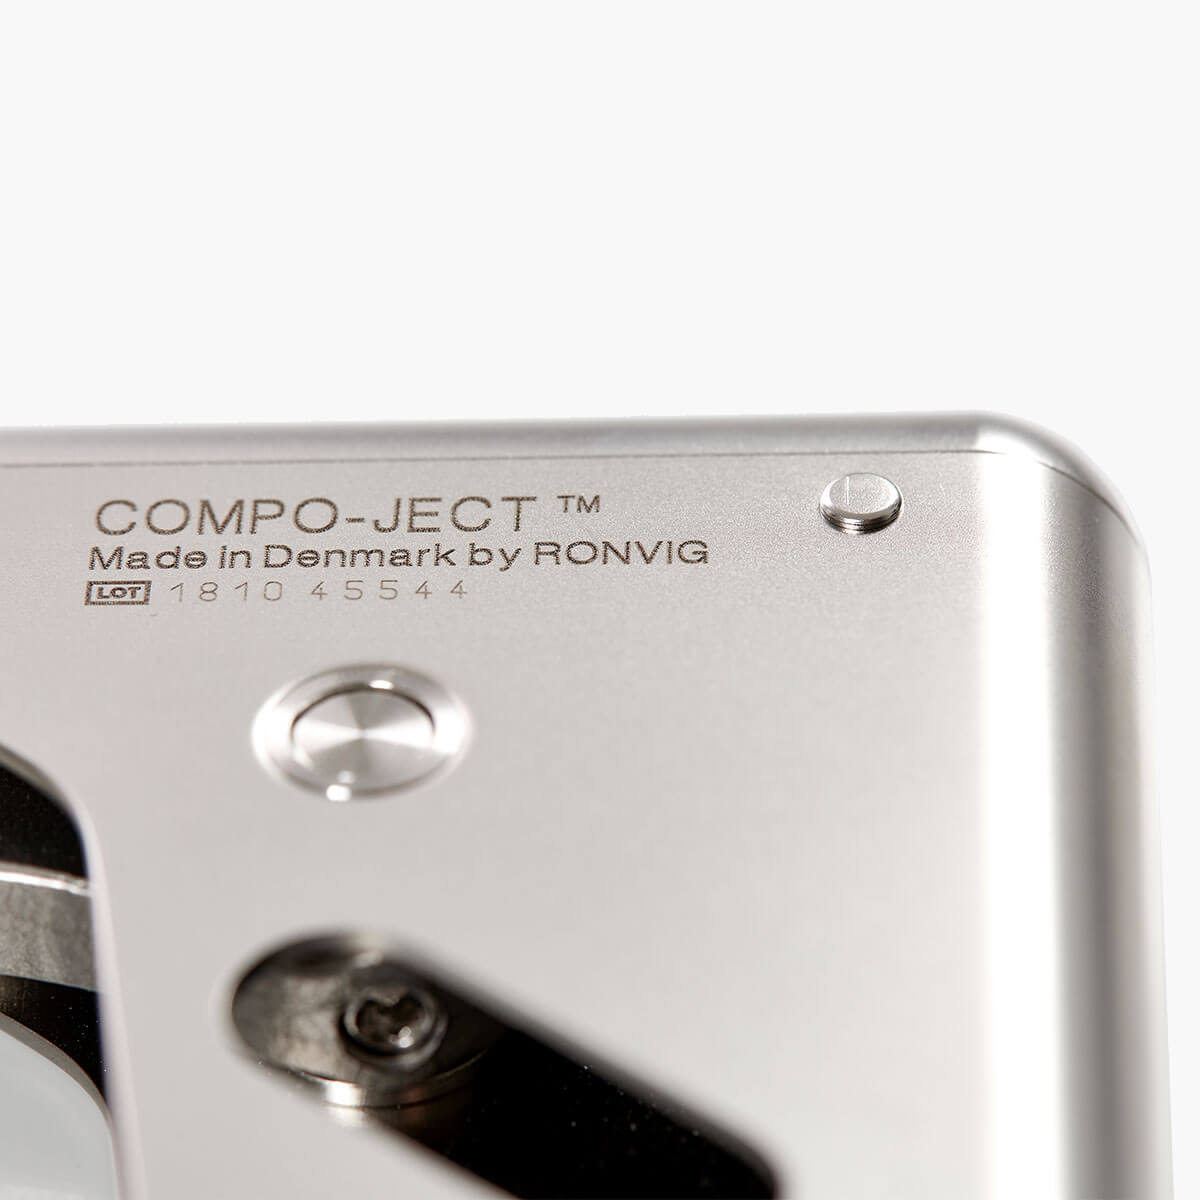 compo-ject05